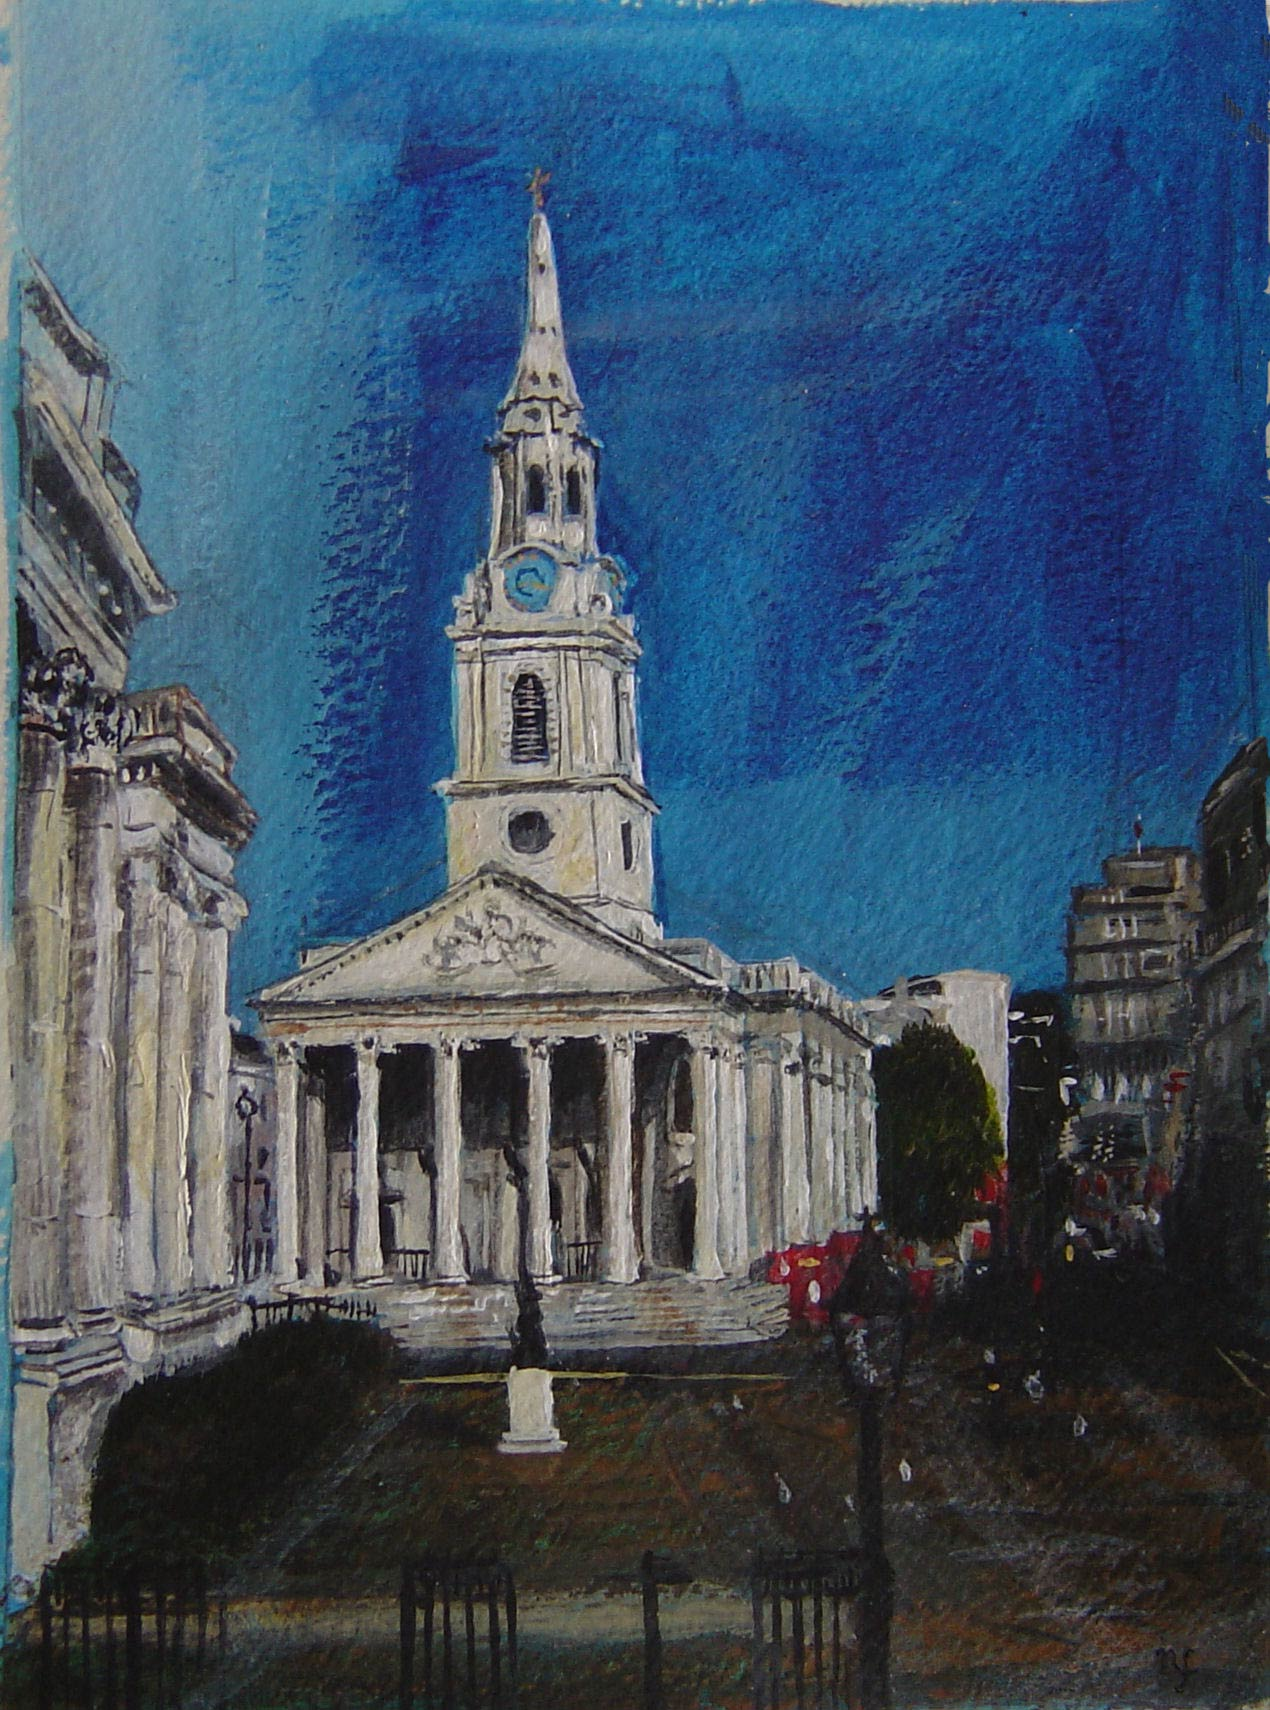 St Martin in the Fields from the National Gallery 18 x 13 cm